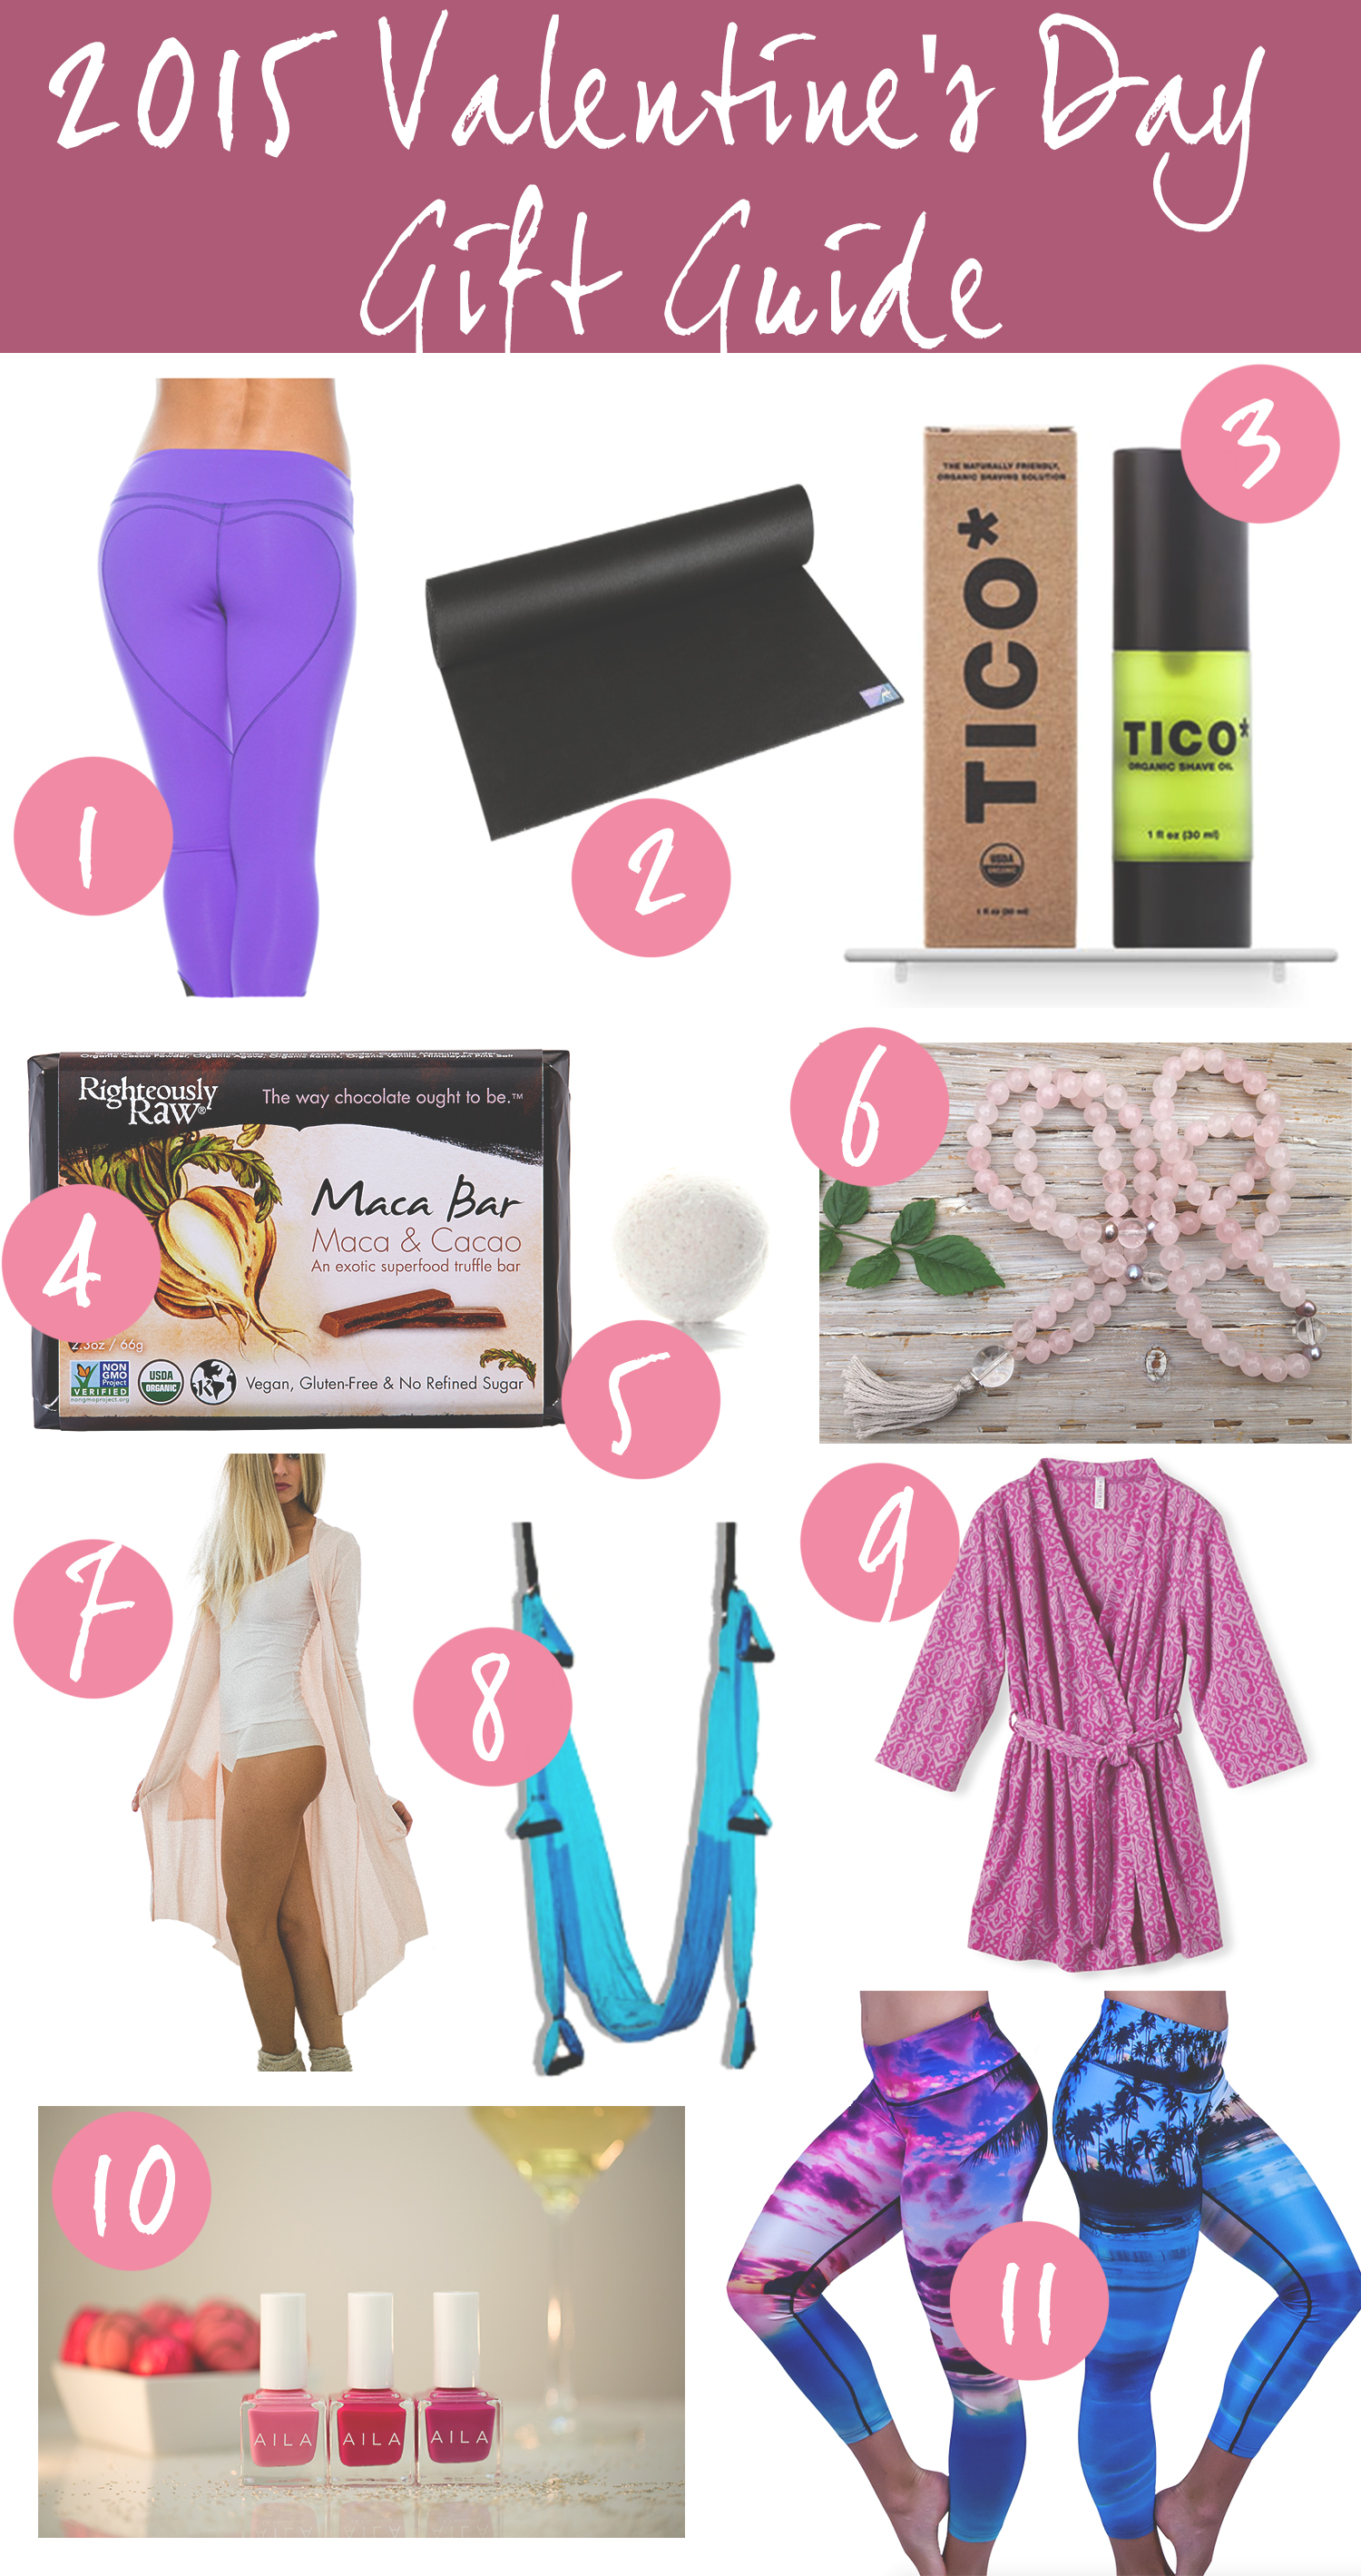 Pin now, shop later! 2015 Valentine's Day Gift Guide